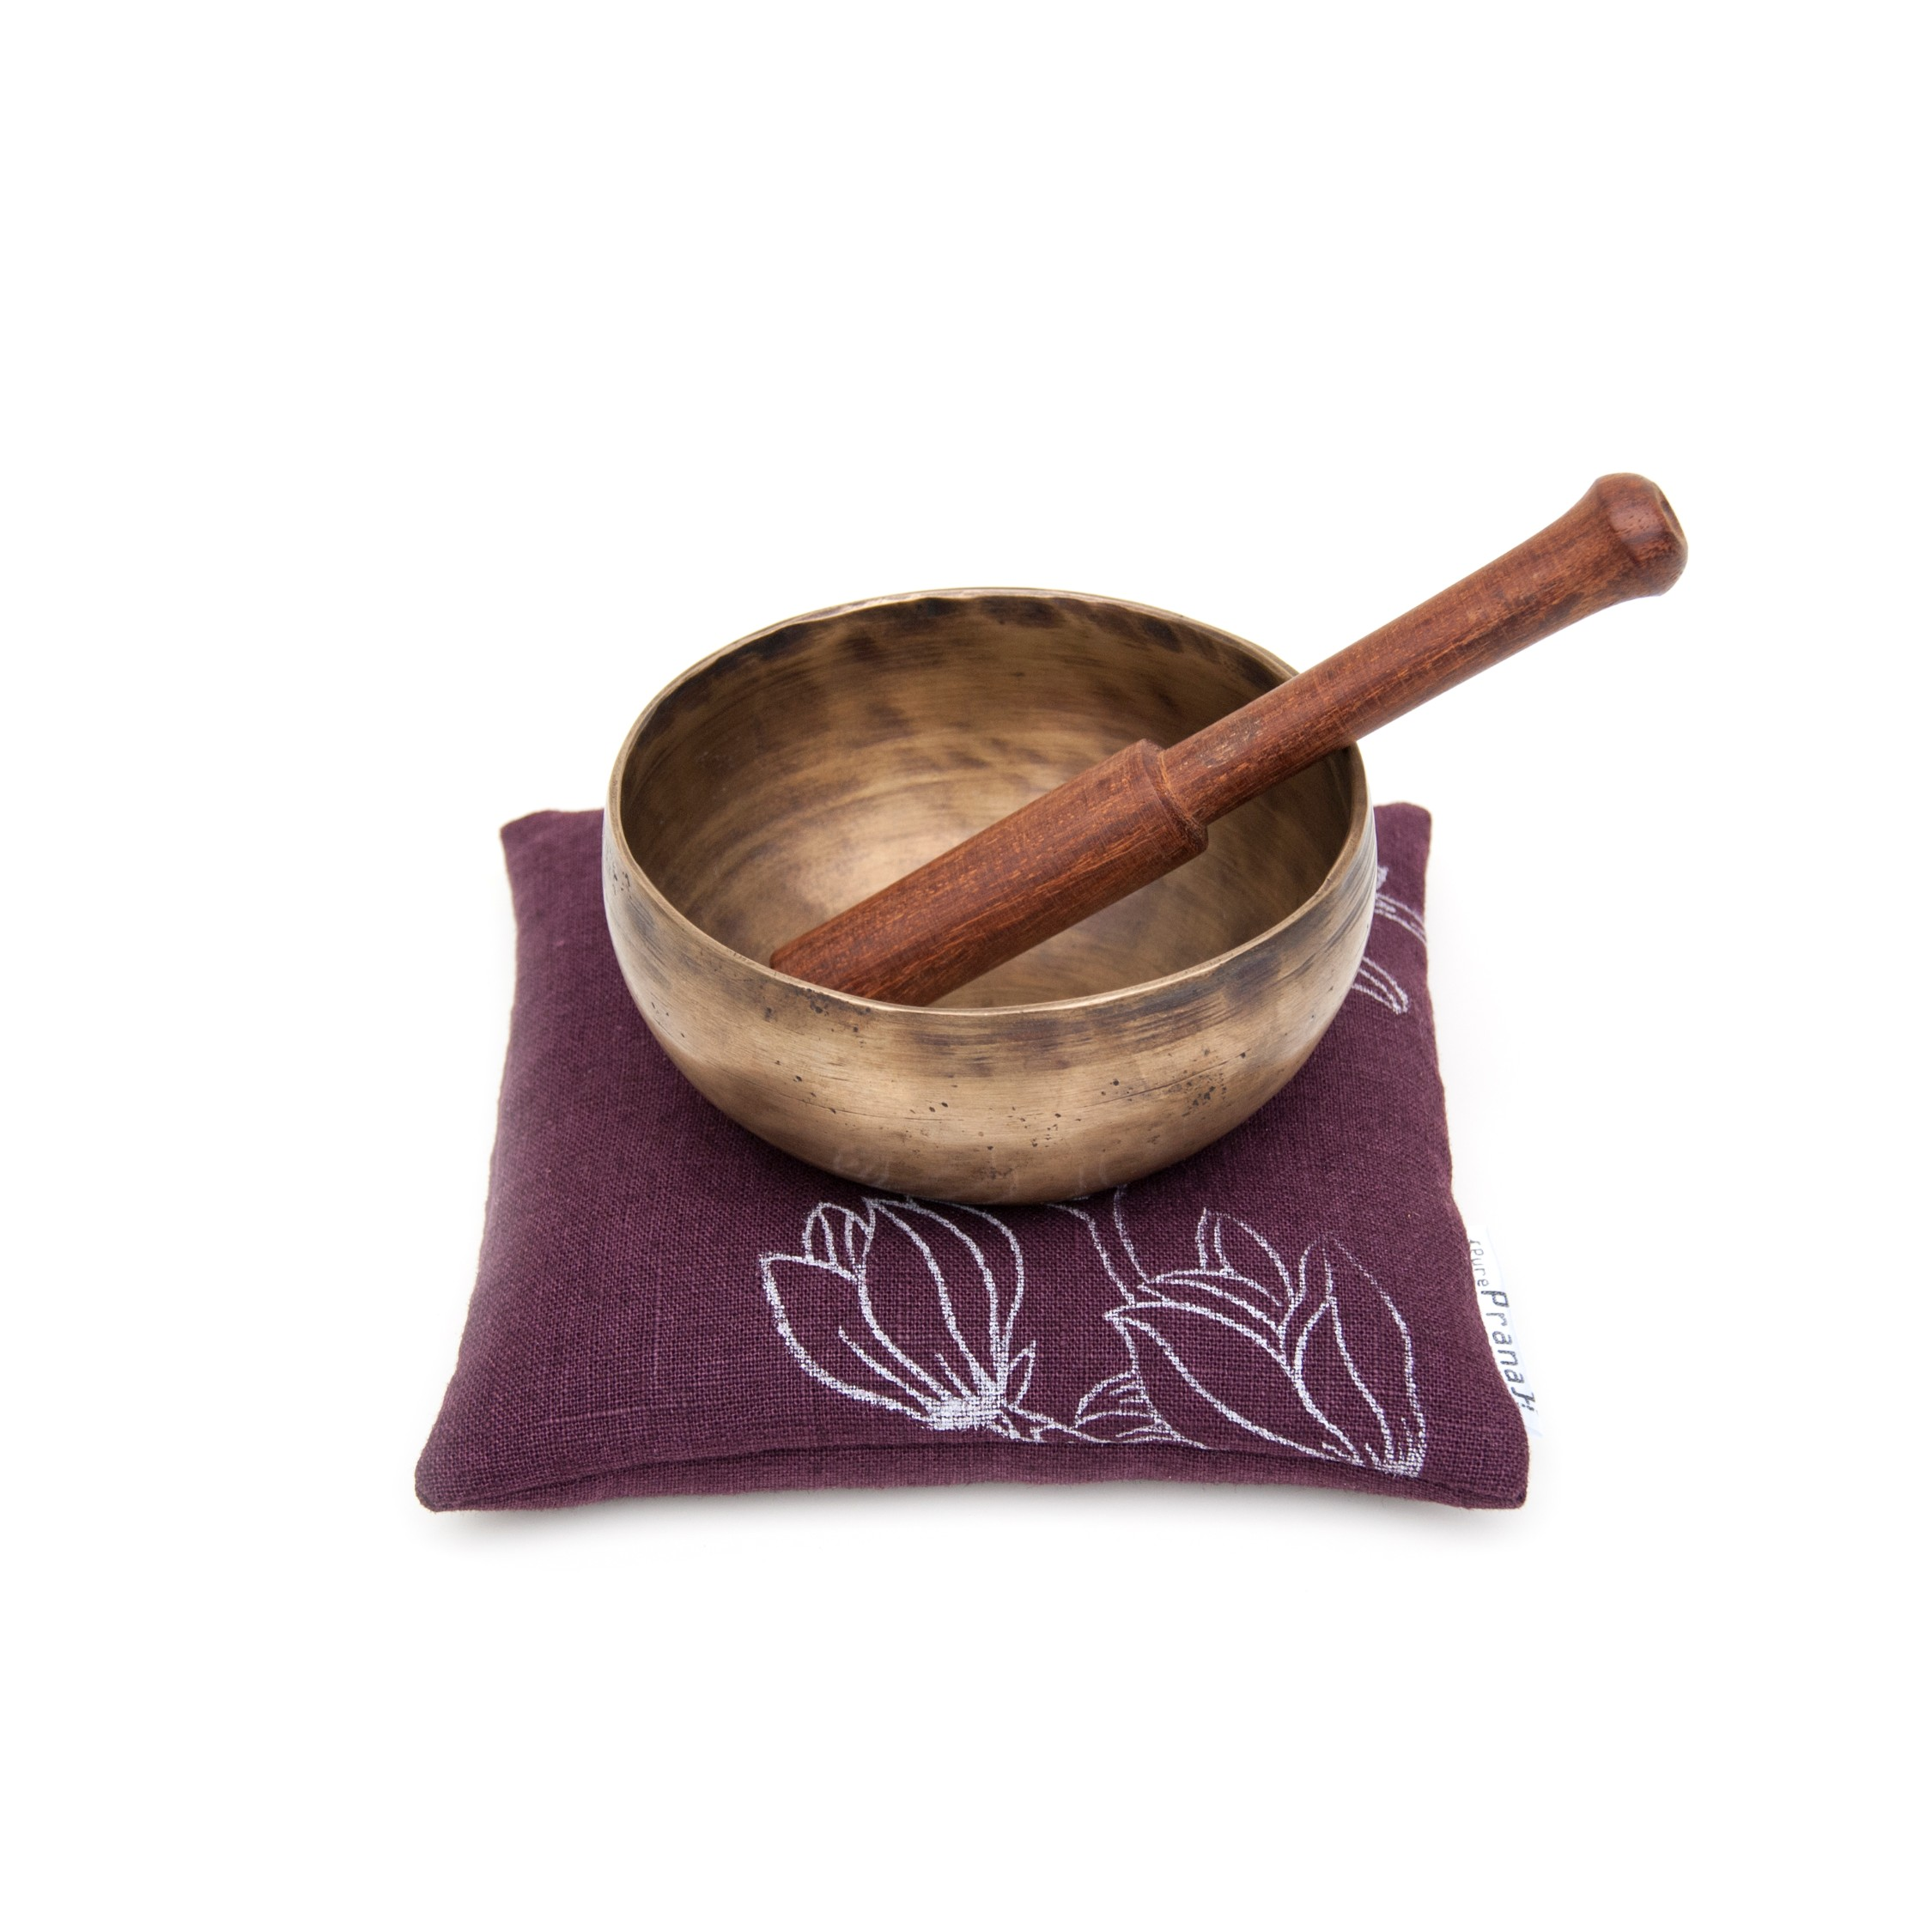 Singing bowl cushion Magnolia Eggplant by Pure Prana Label